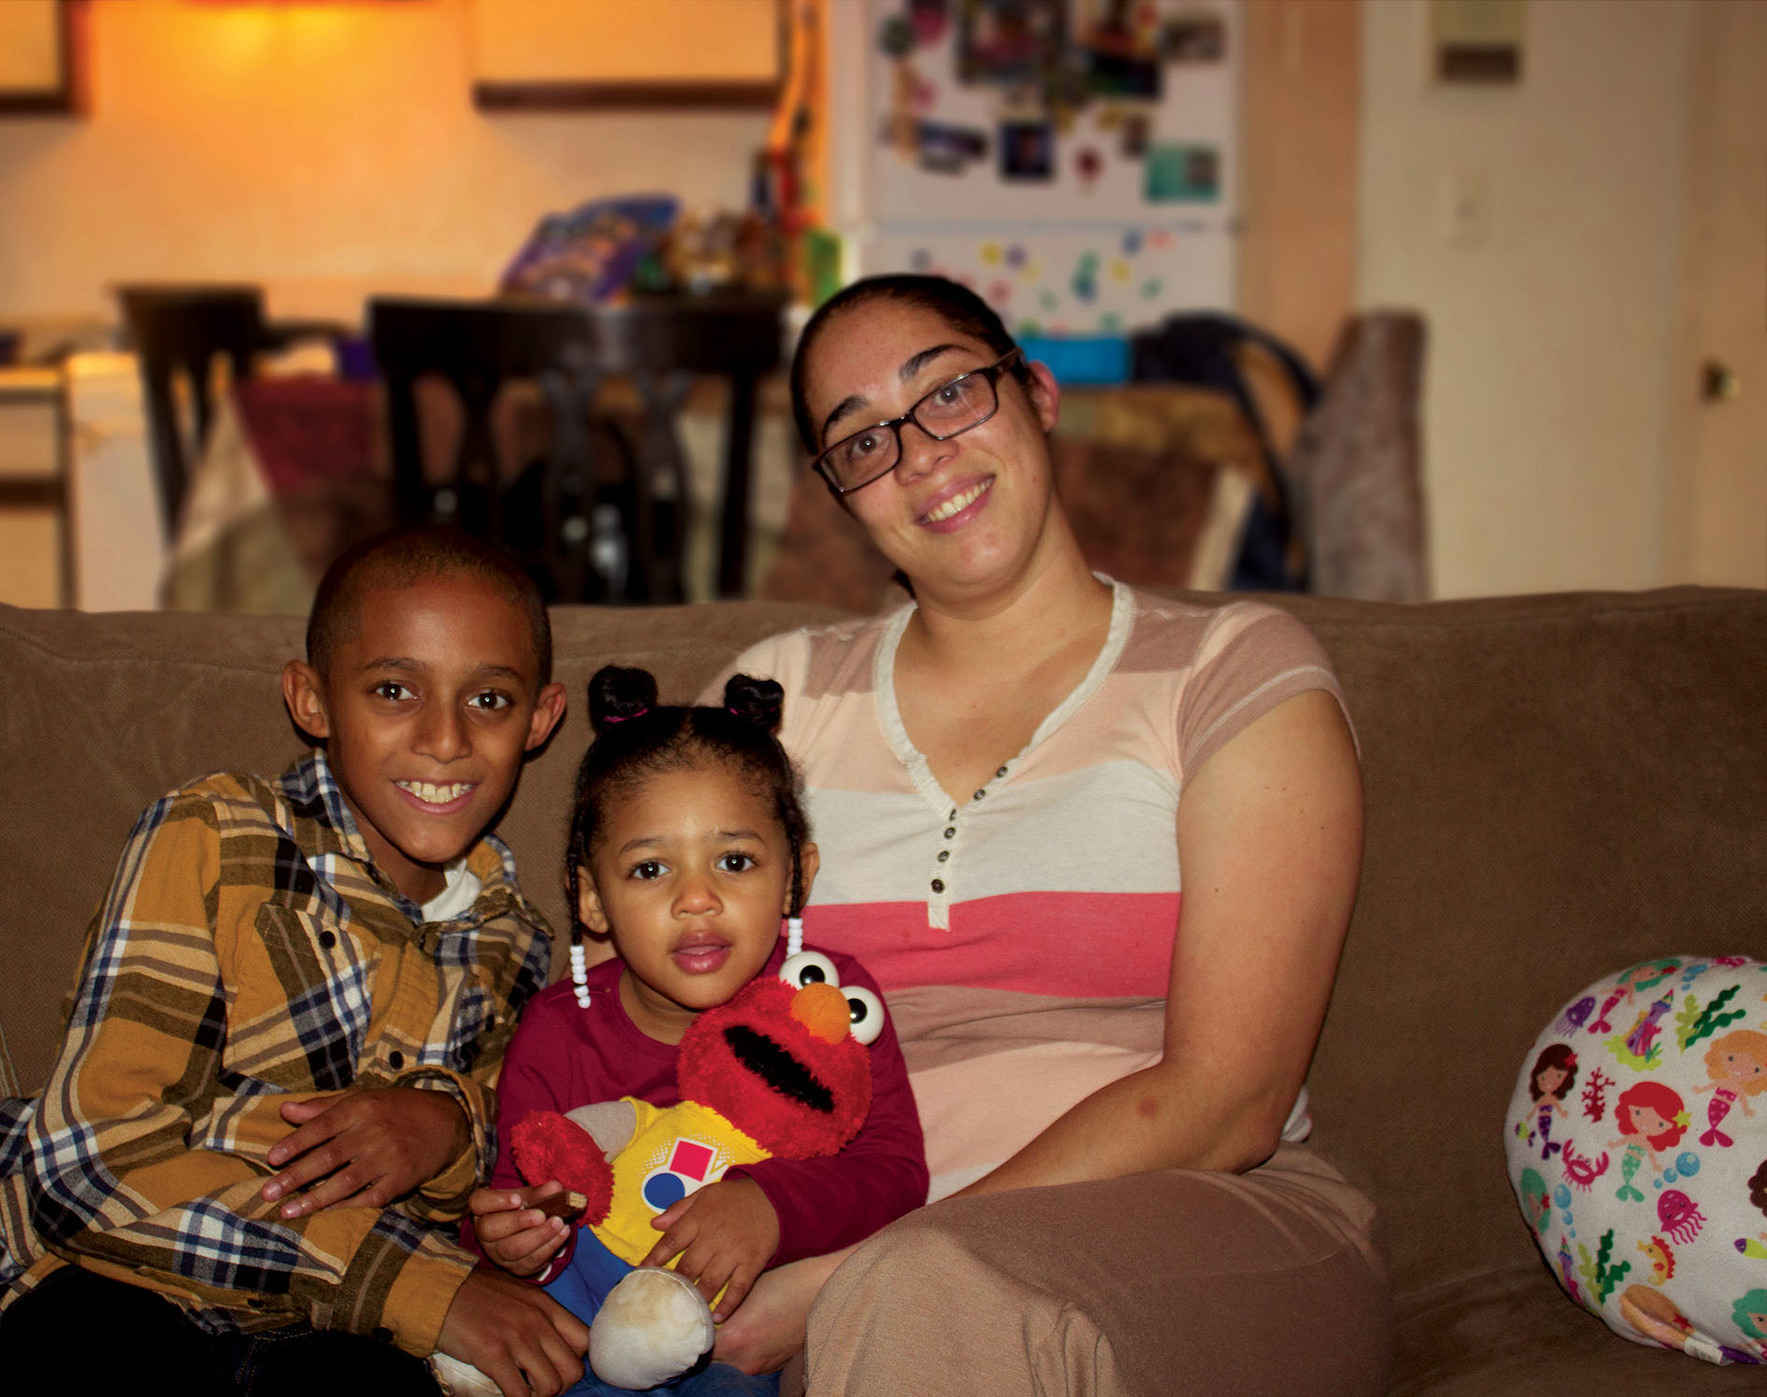 Cynthia dreams of giving her kids the safe, stable home she never had growing up. image